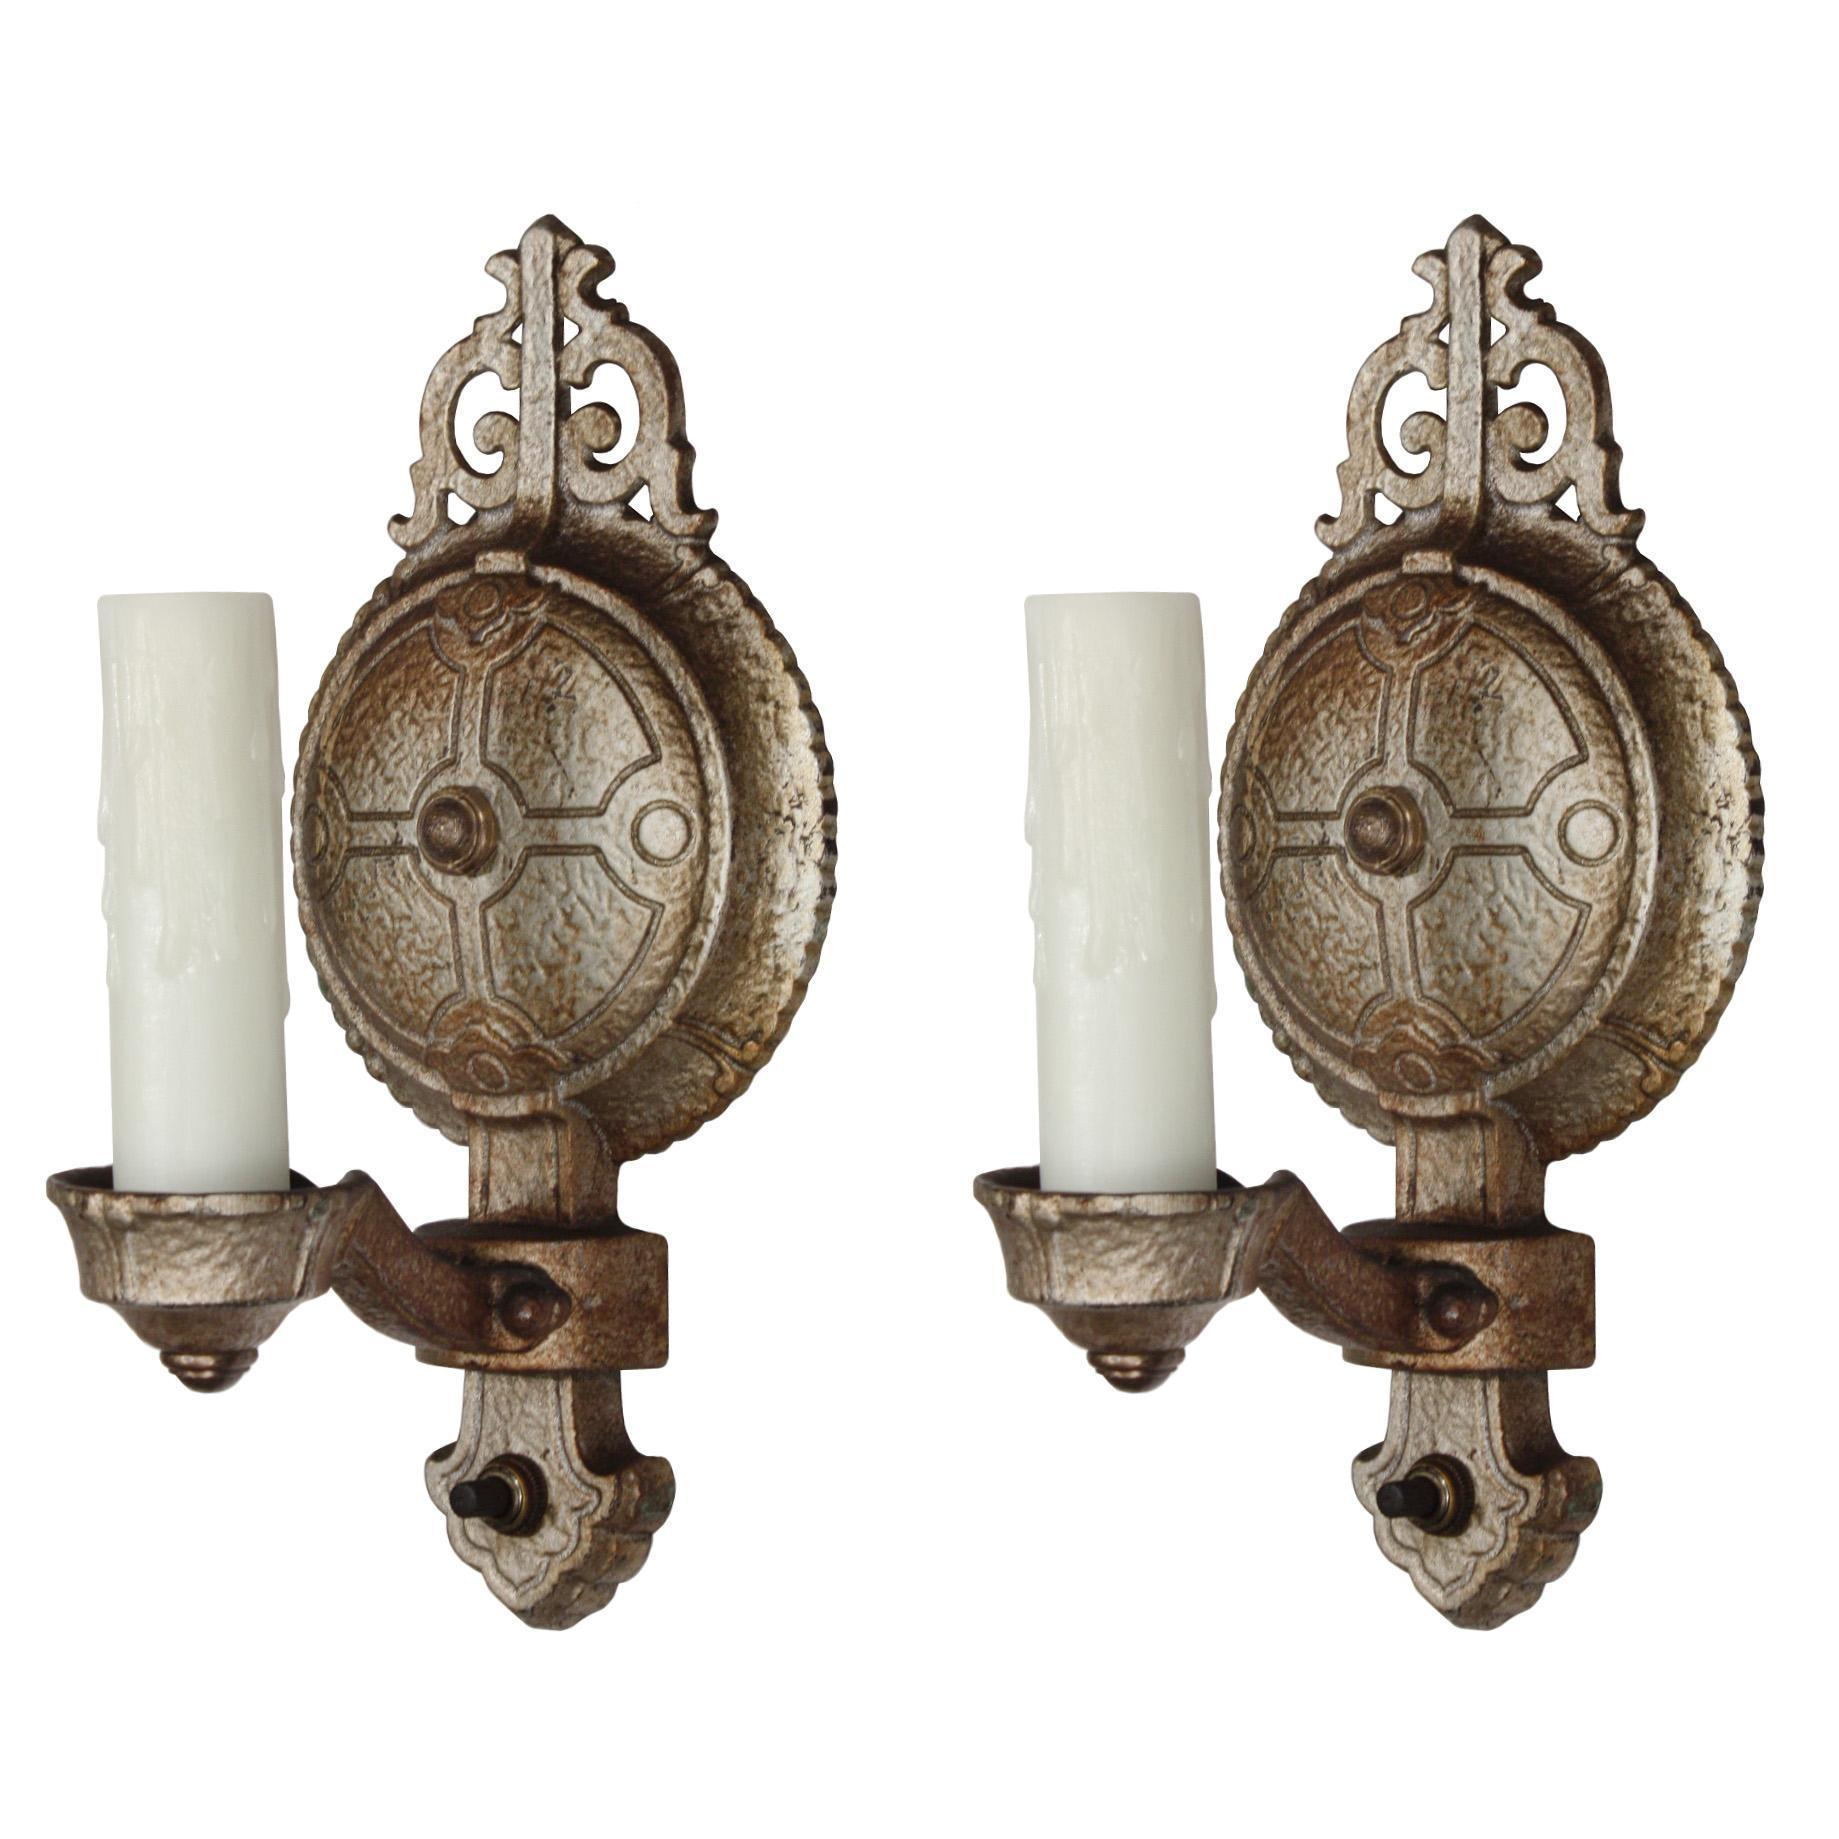 Striking Antique Tudor Single-Arm Sconce Pair, c.1920